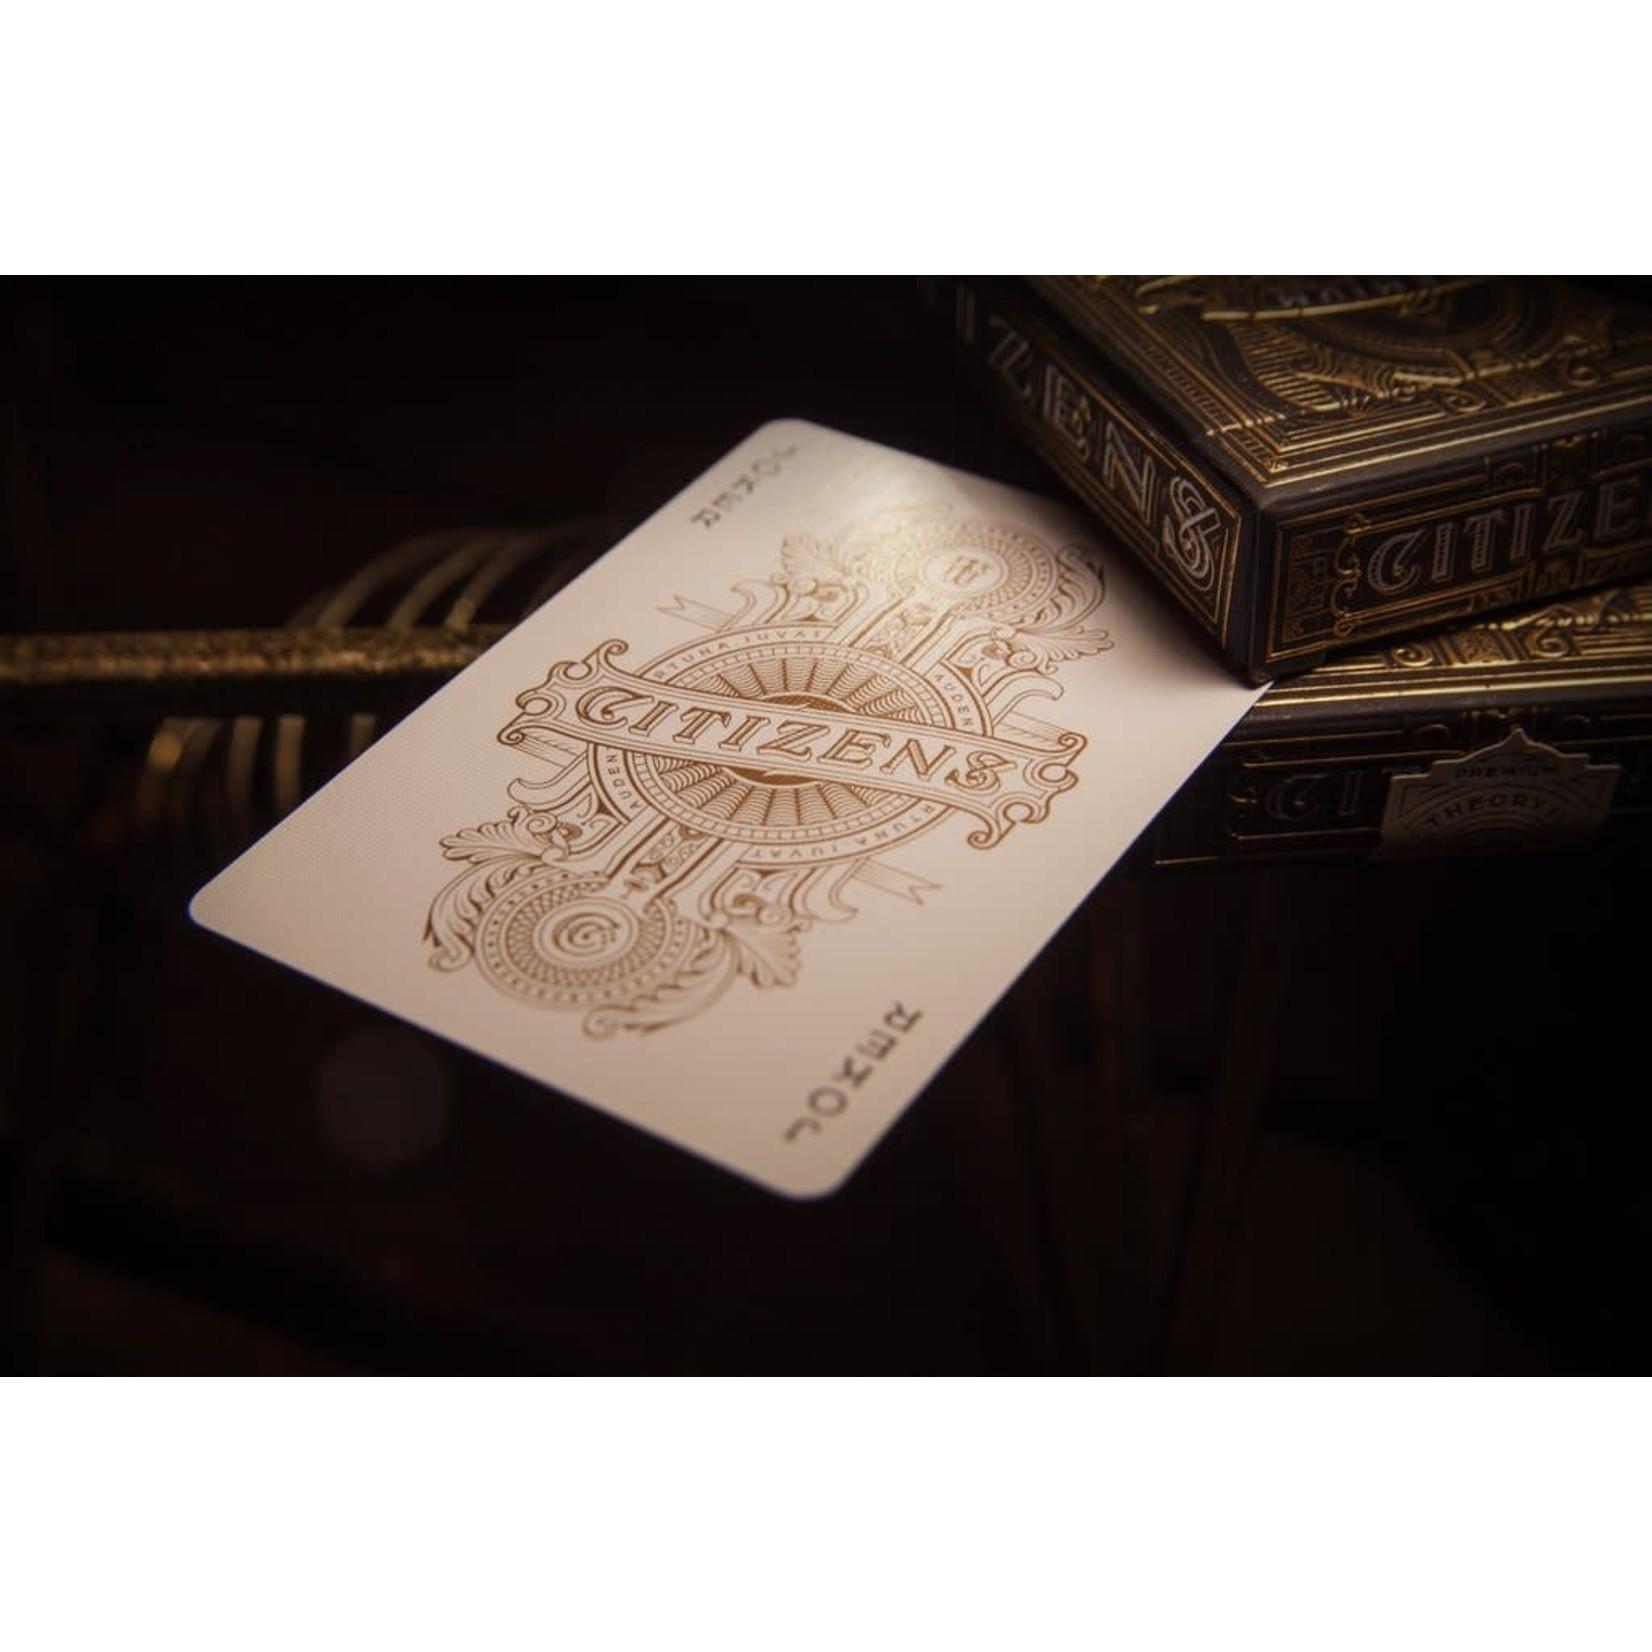 theory11 Theory 11 Citizen Playing Cards